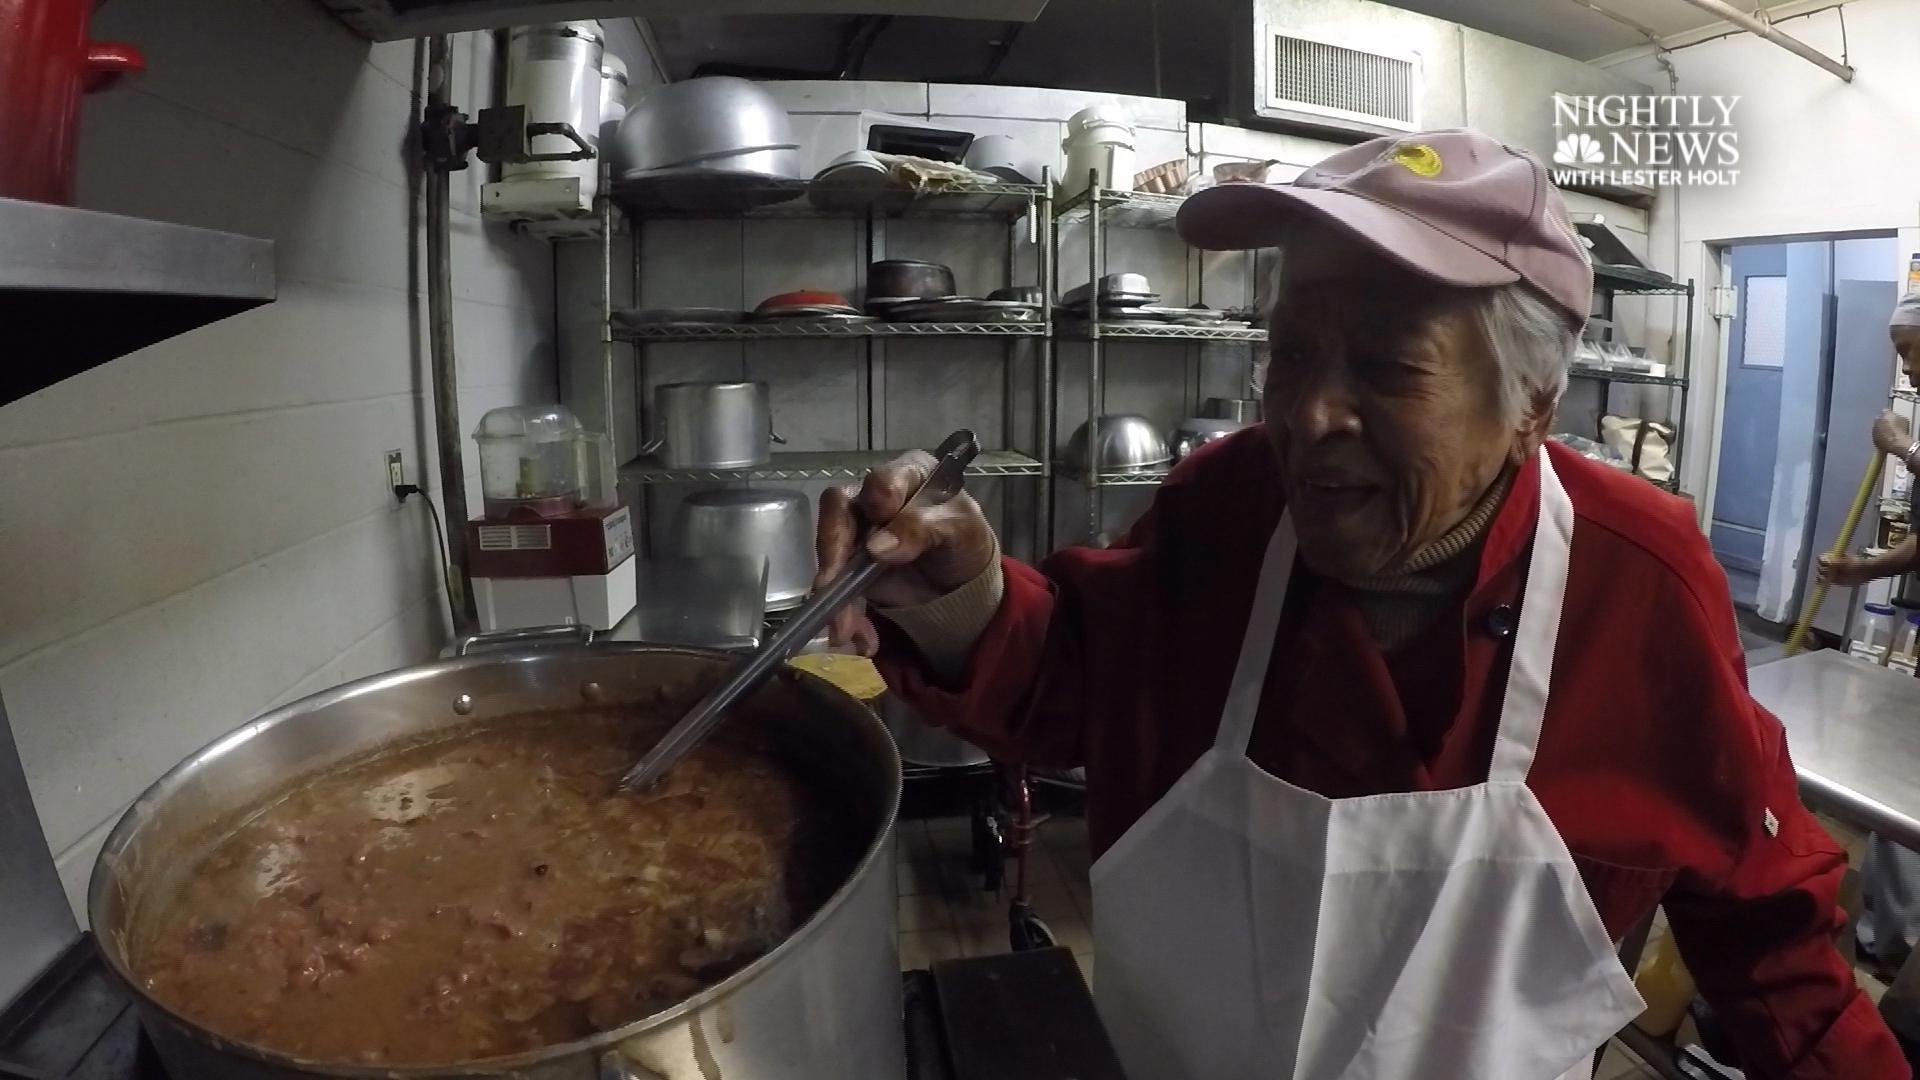 96-year-old chef serves up classic Creole cuisine and New Orleans history (Part 2)